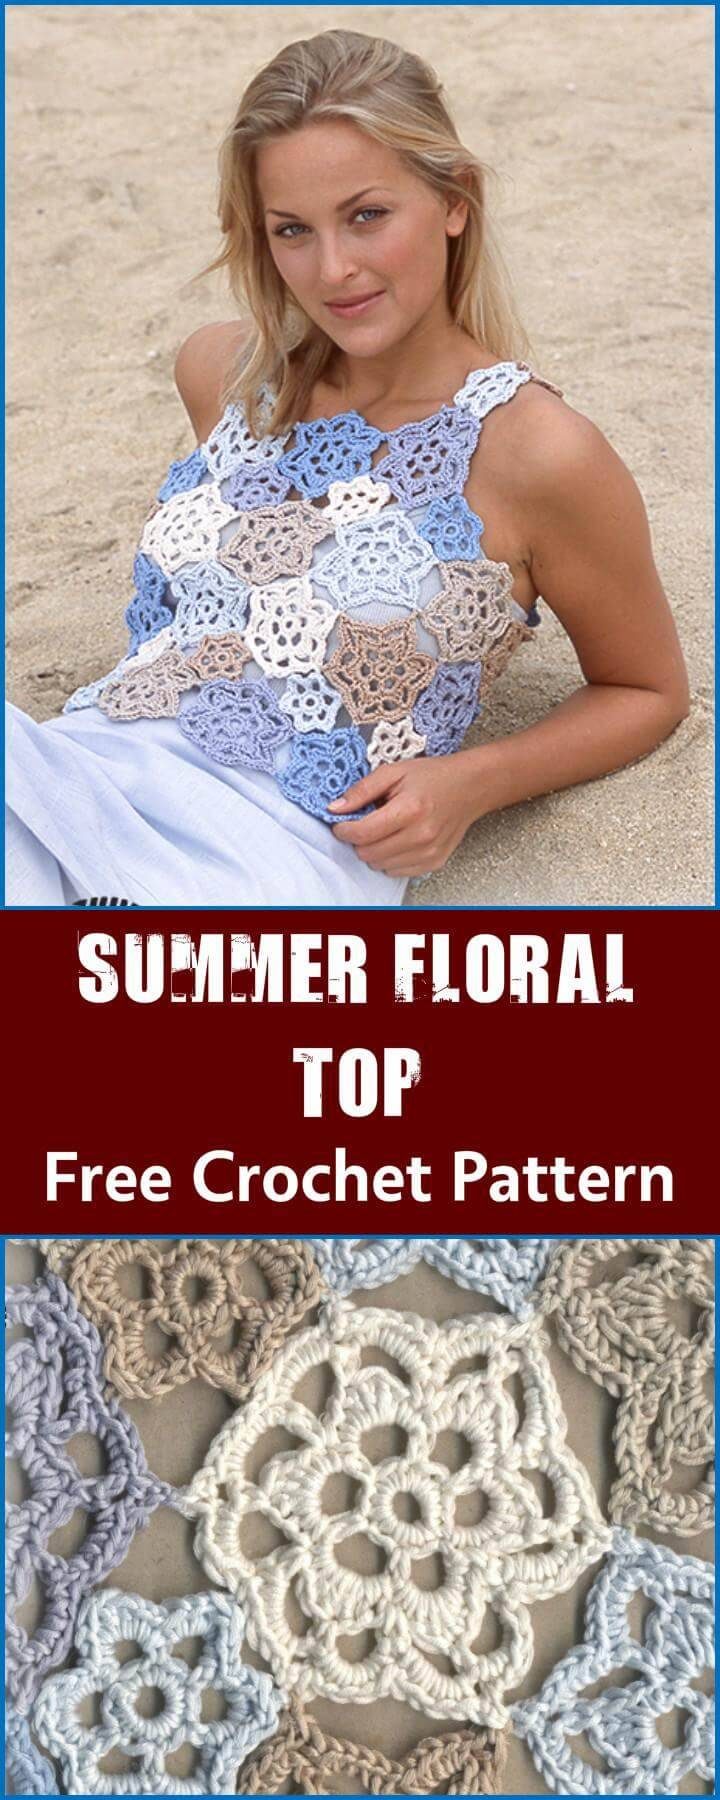 Summer Floral Top Free Crochet Pattern